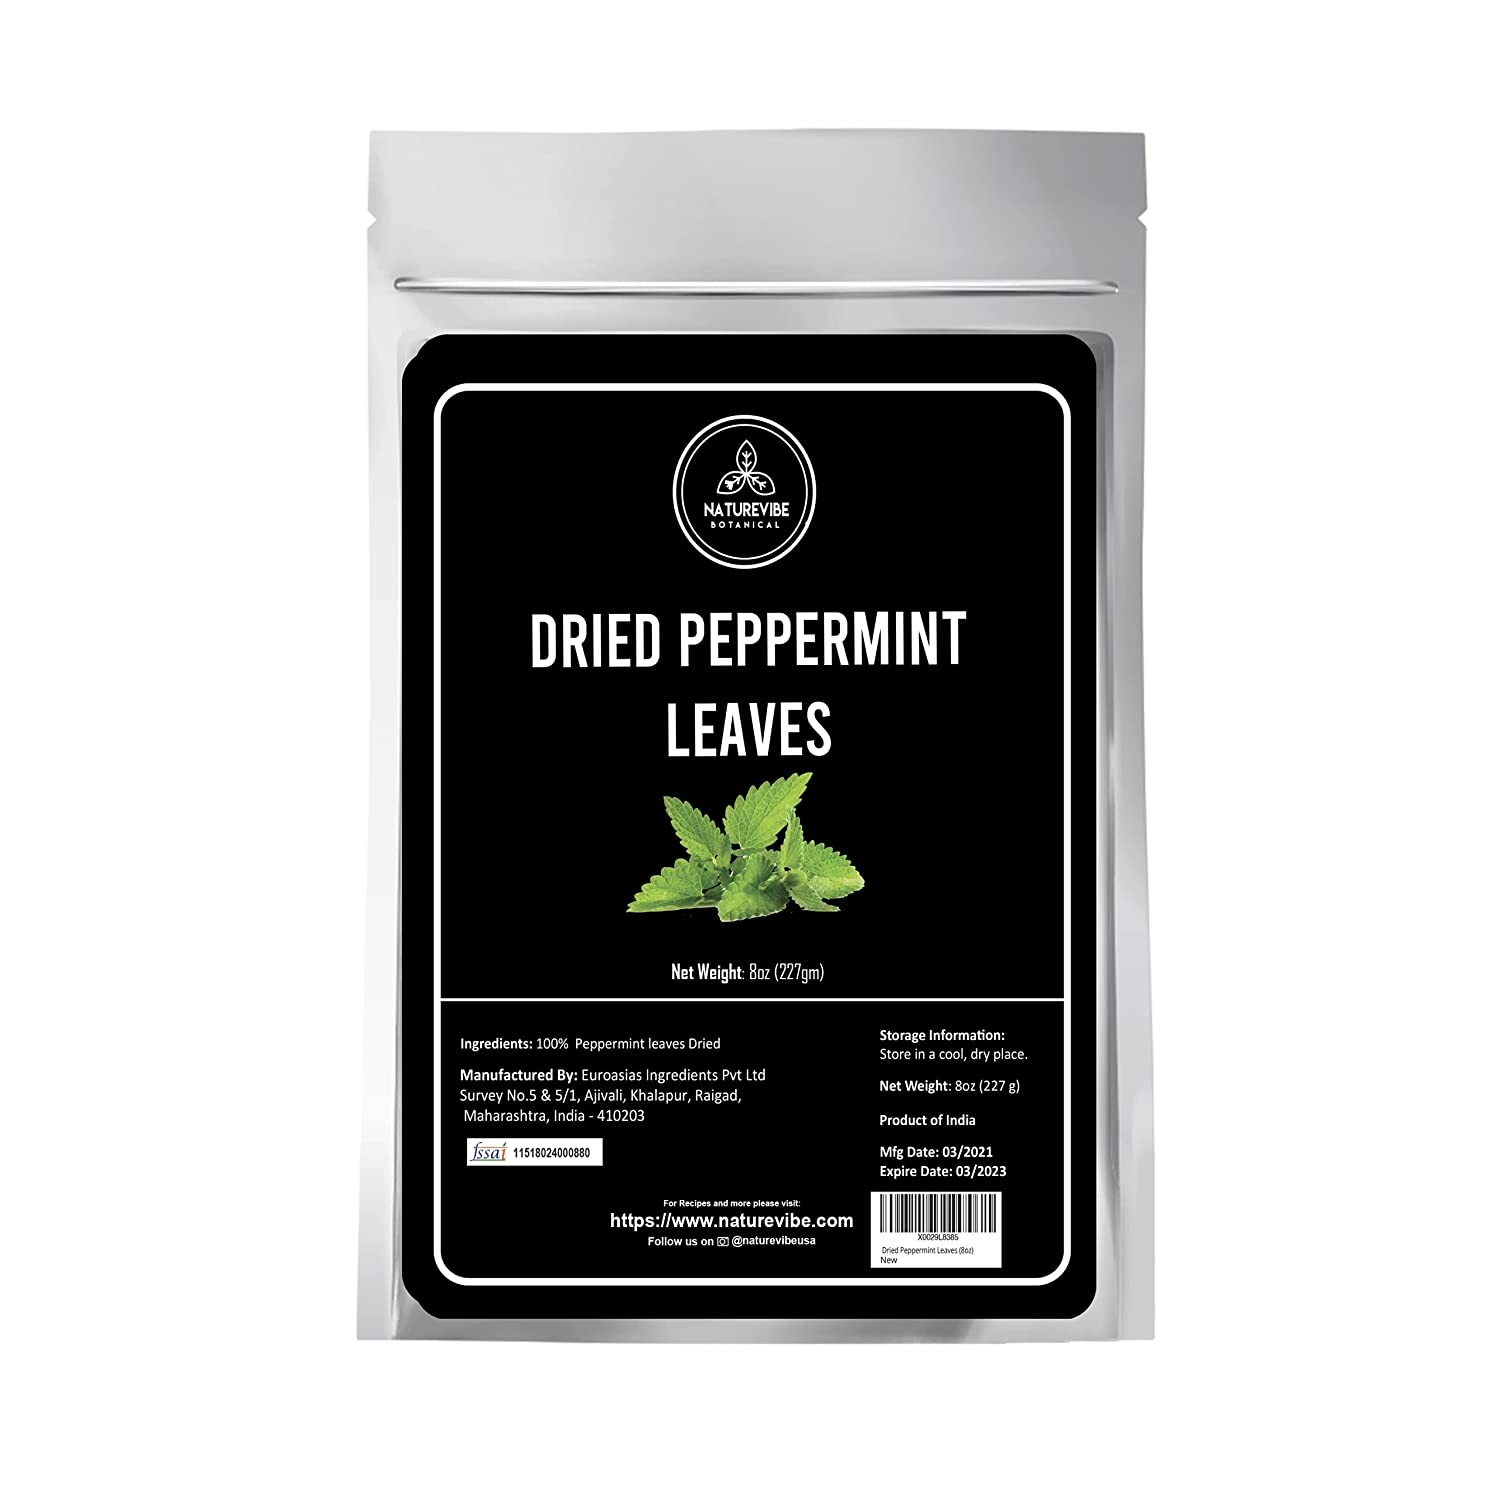 Naturevibe Botanicals Dried Peppermint Leaves Our shop OFFers supreme the best service 8 Keto ounce Fr